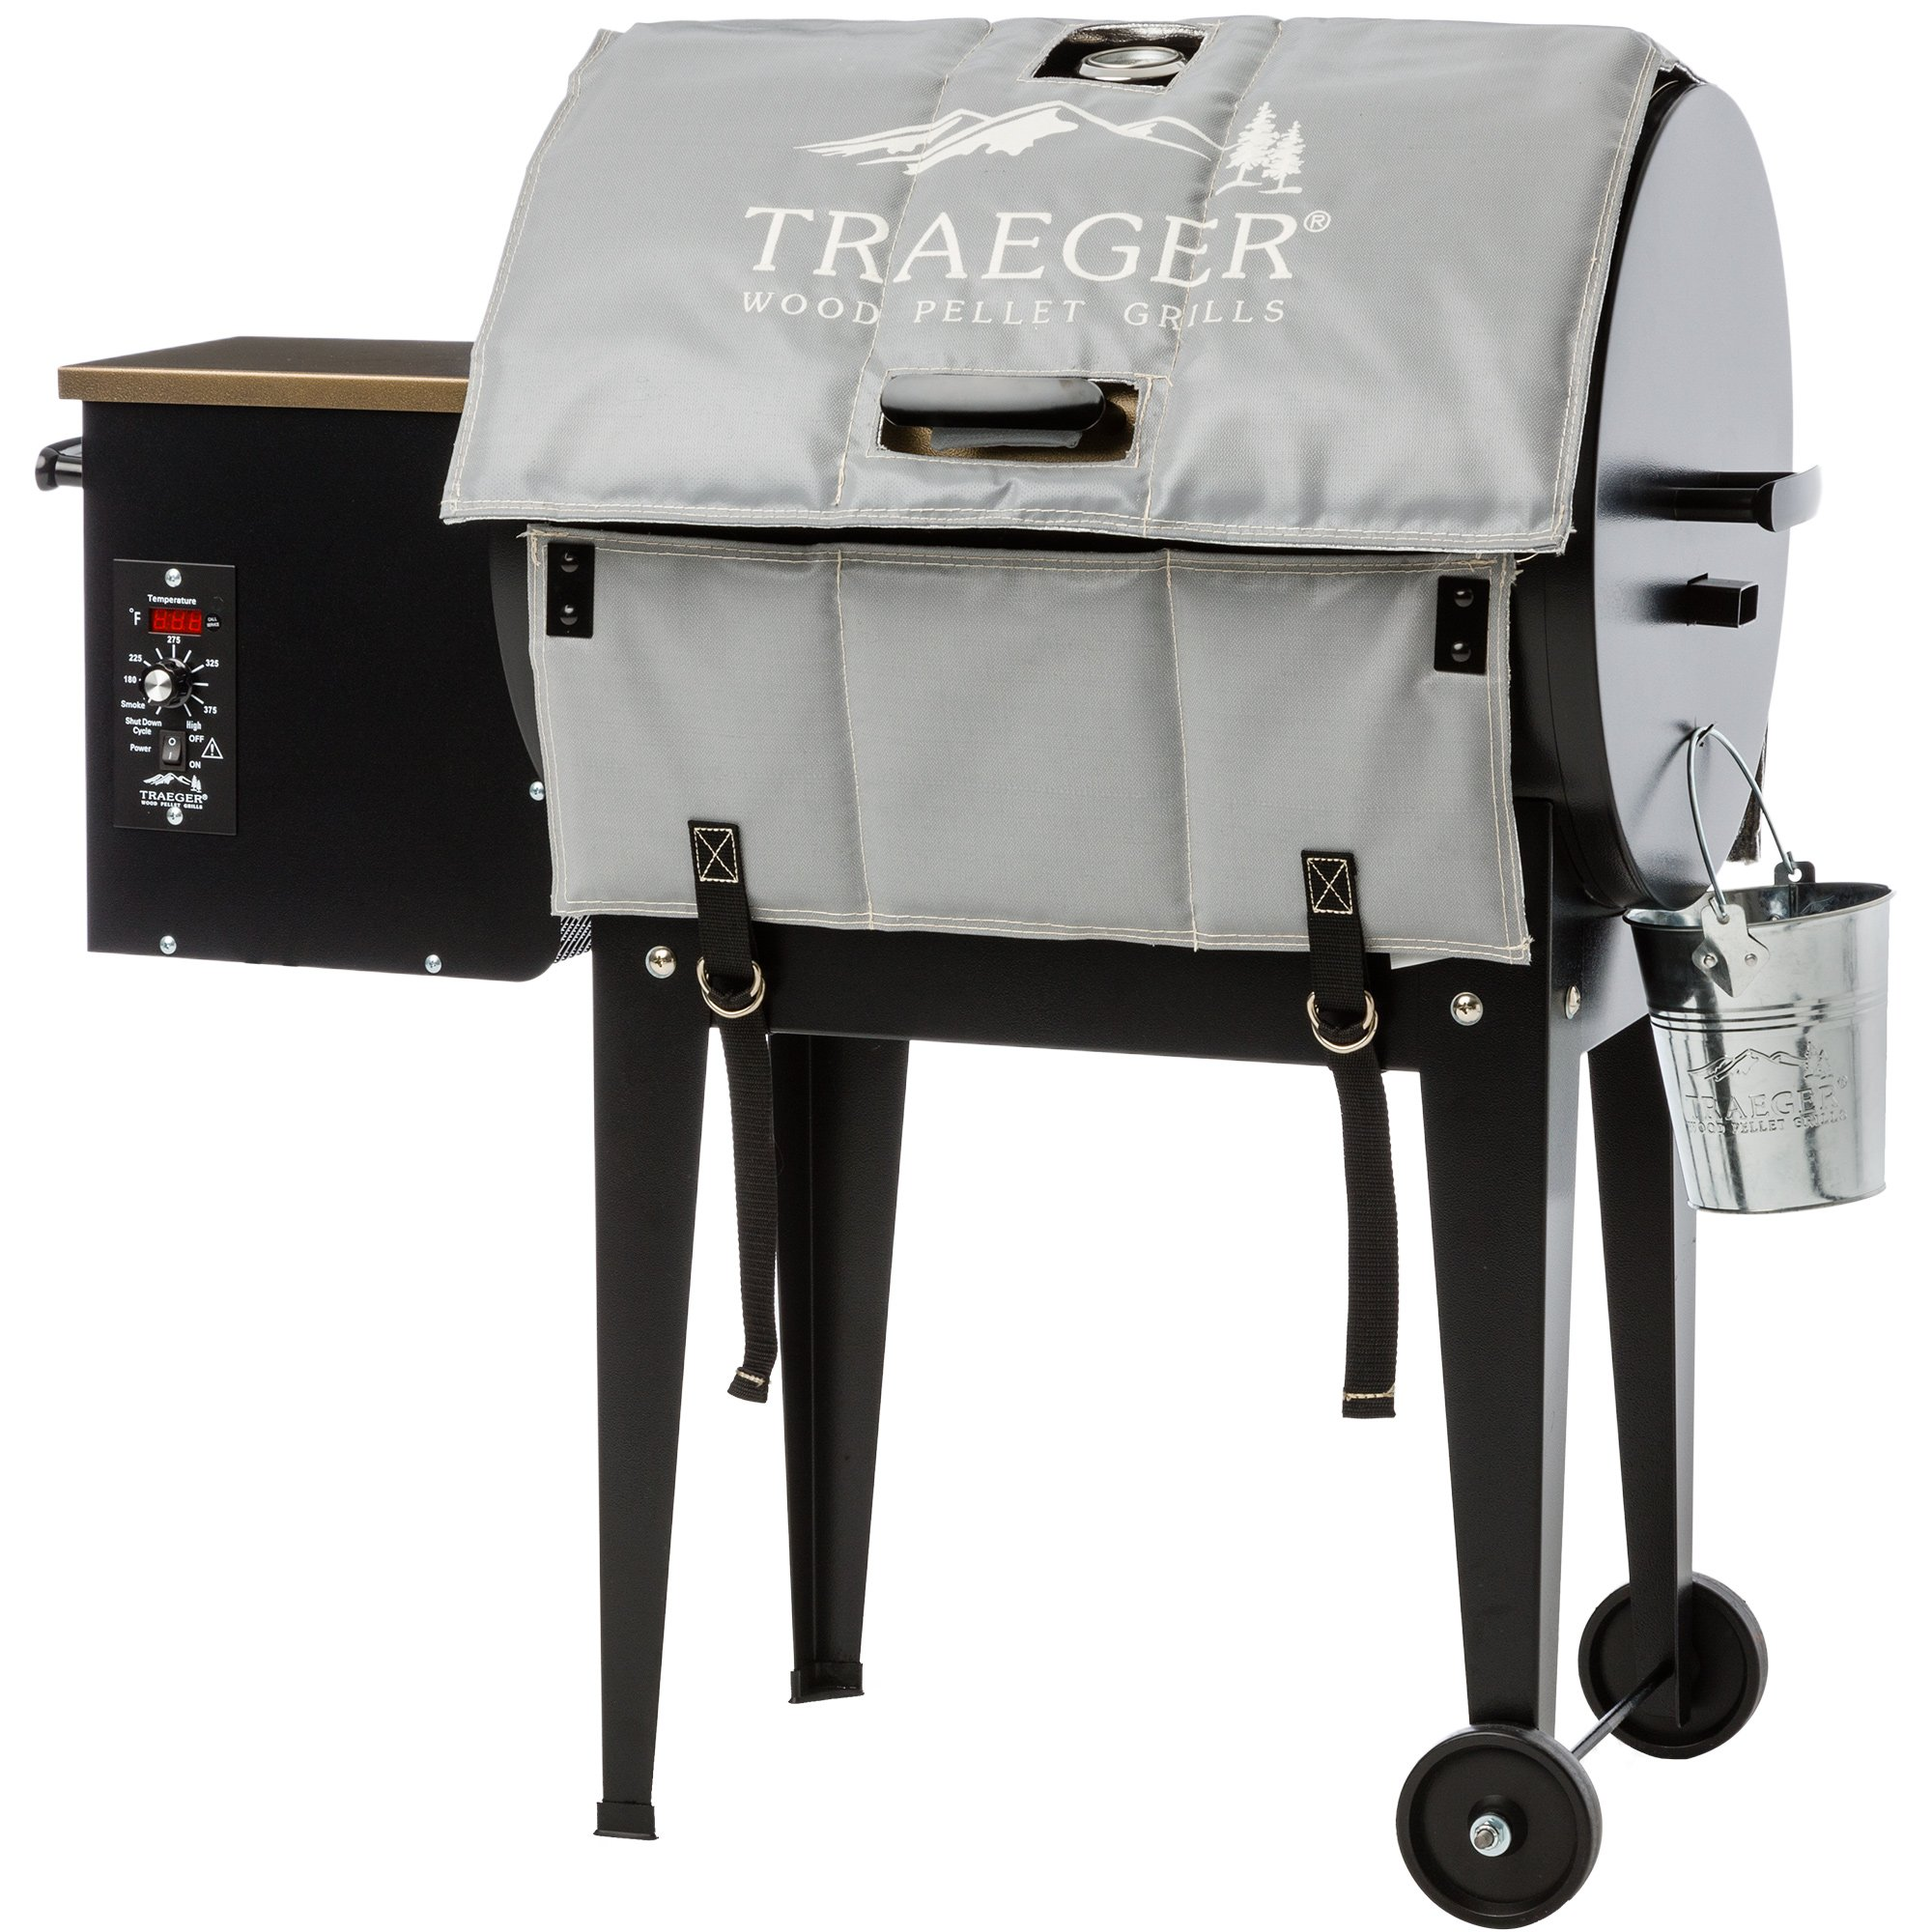 Traeger BAC346 20 Series BBQ Grill Insulation Blanket for Winter Cooking by Traeger